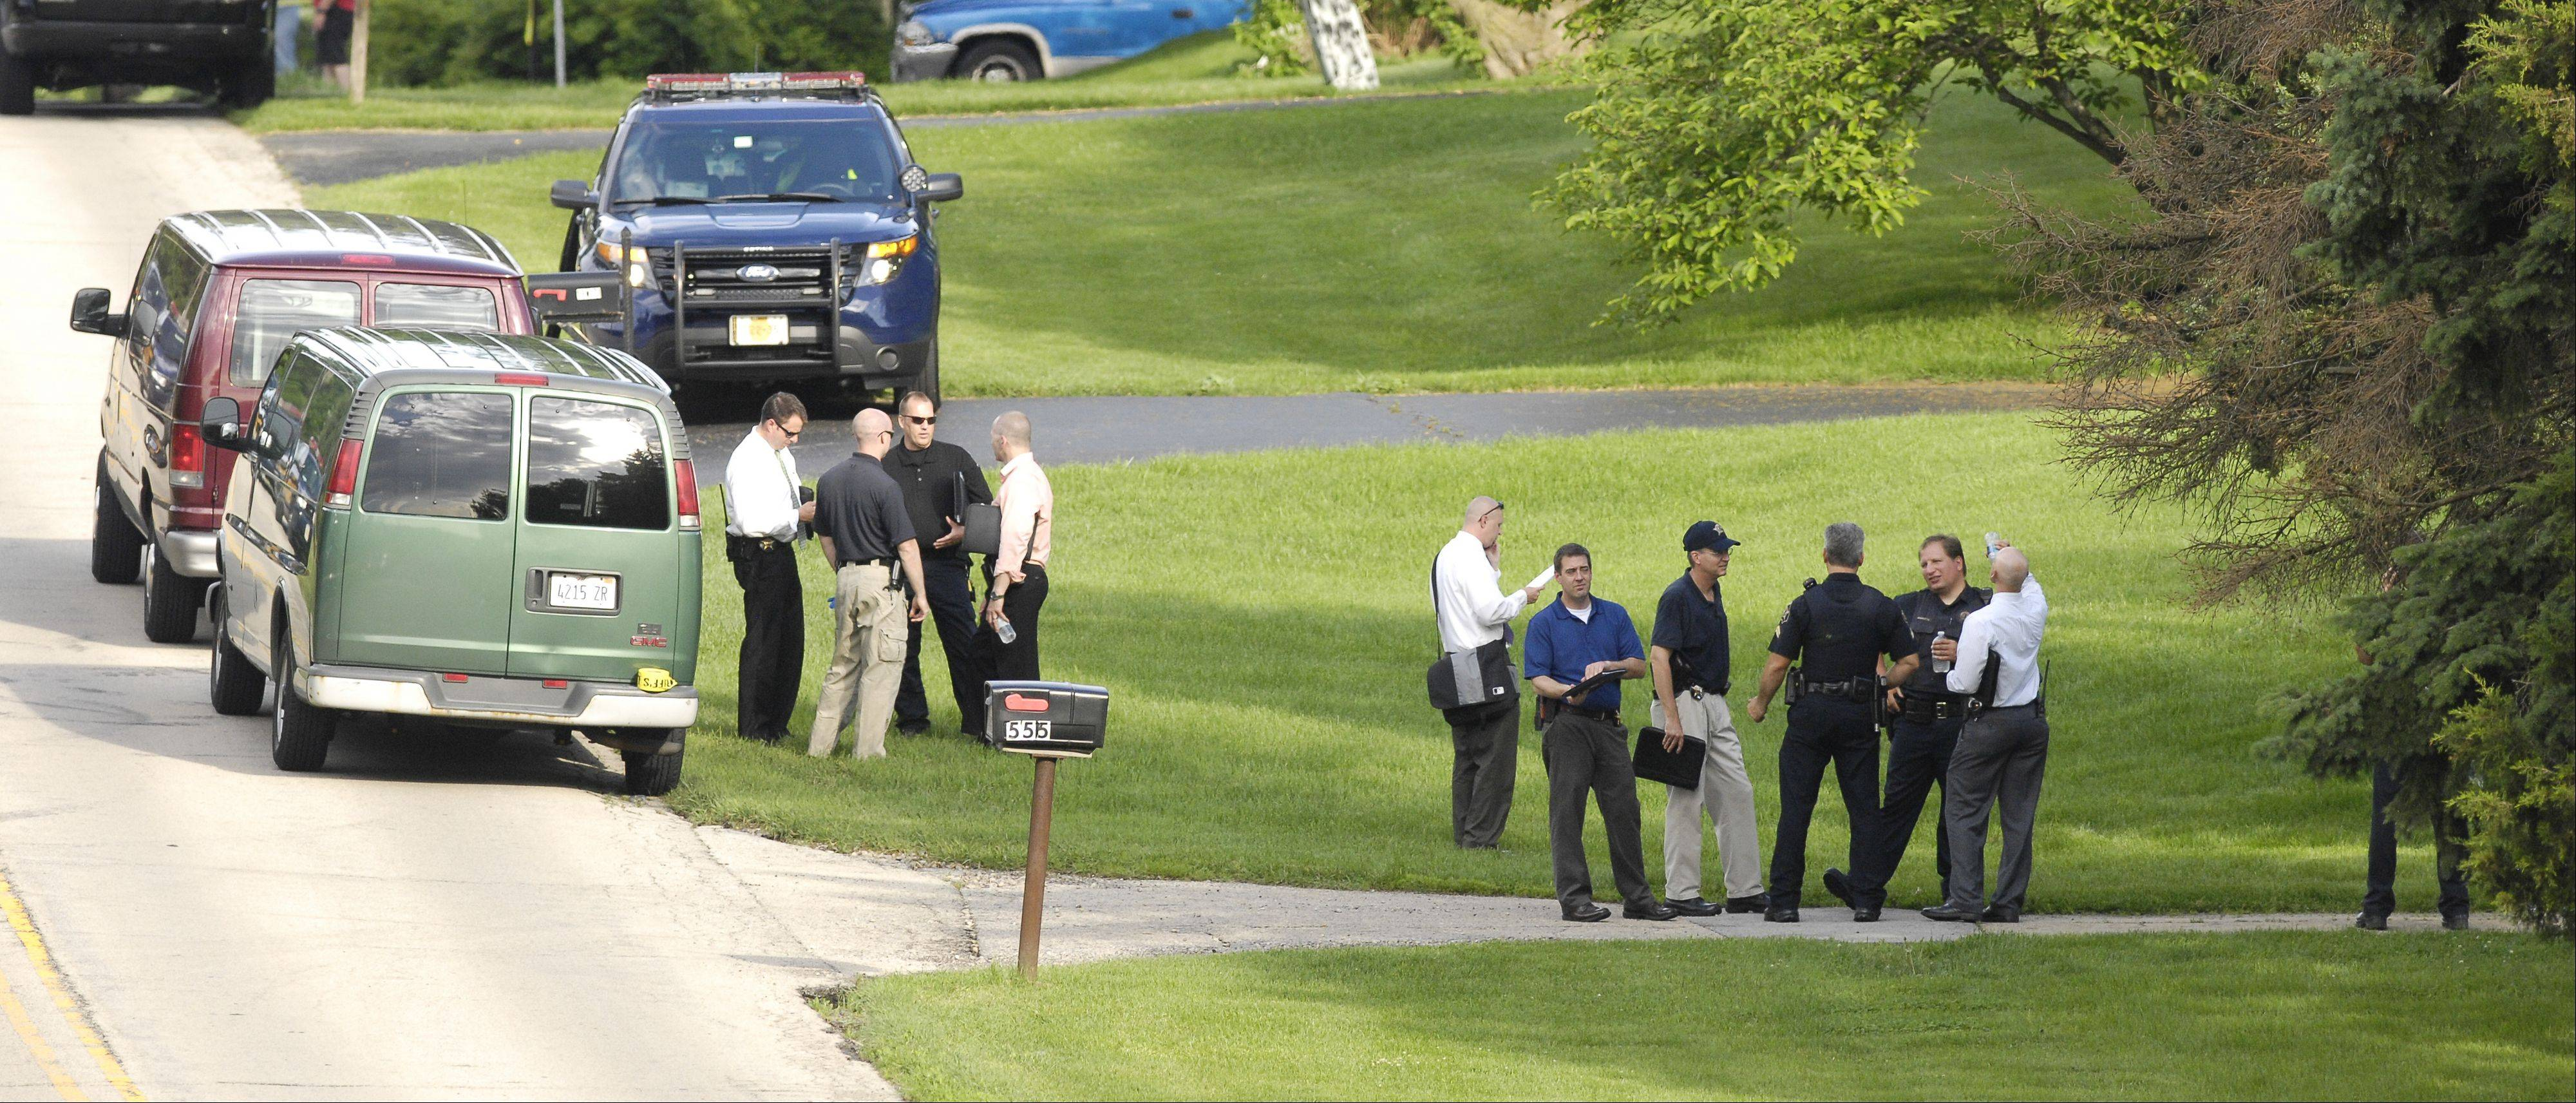 Police investigate Tuesday on Oldfield Road near Darien where four members of a family were found dead.